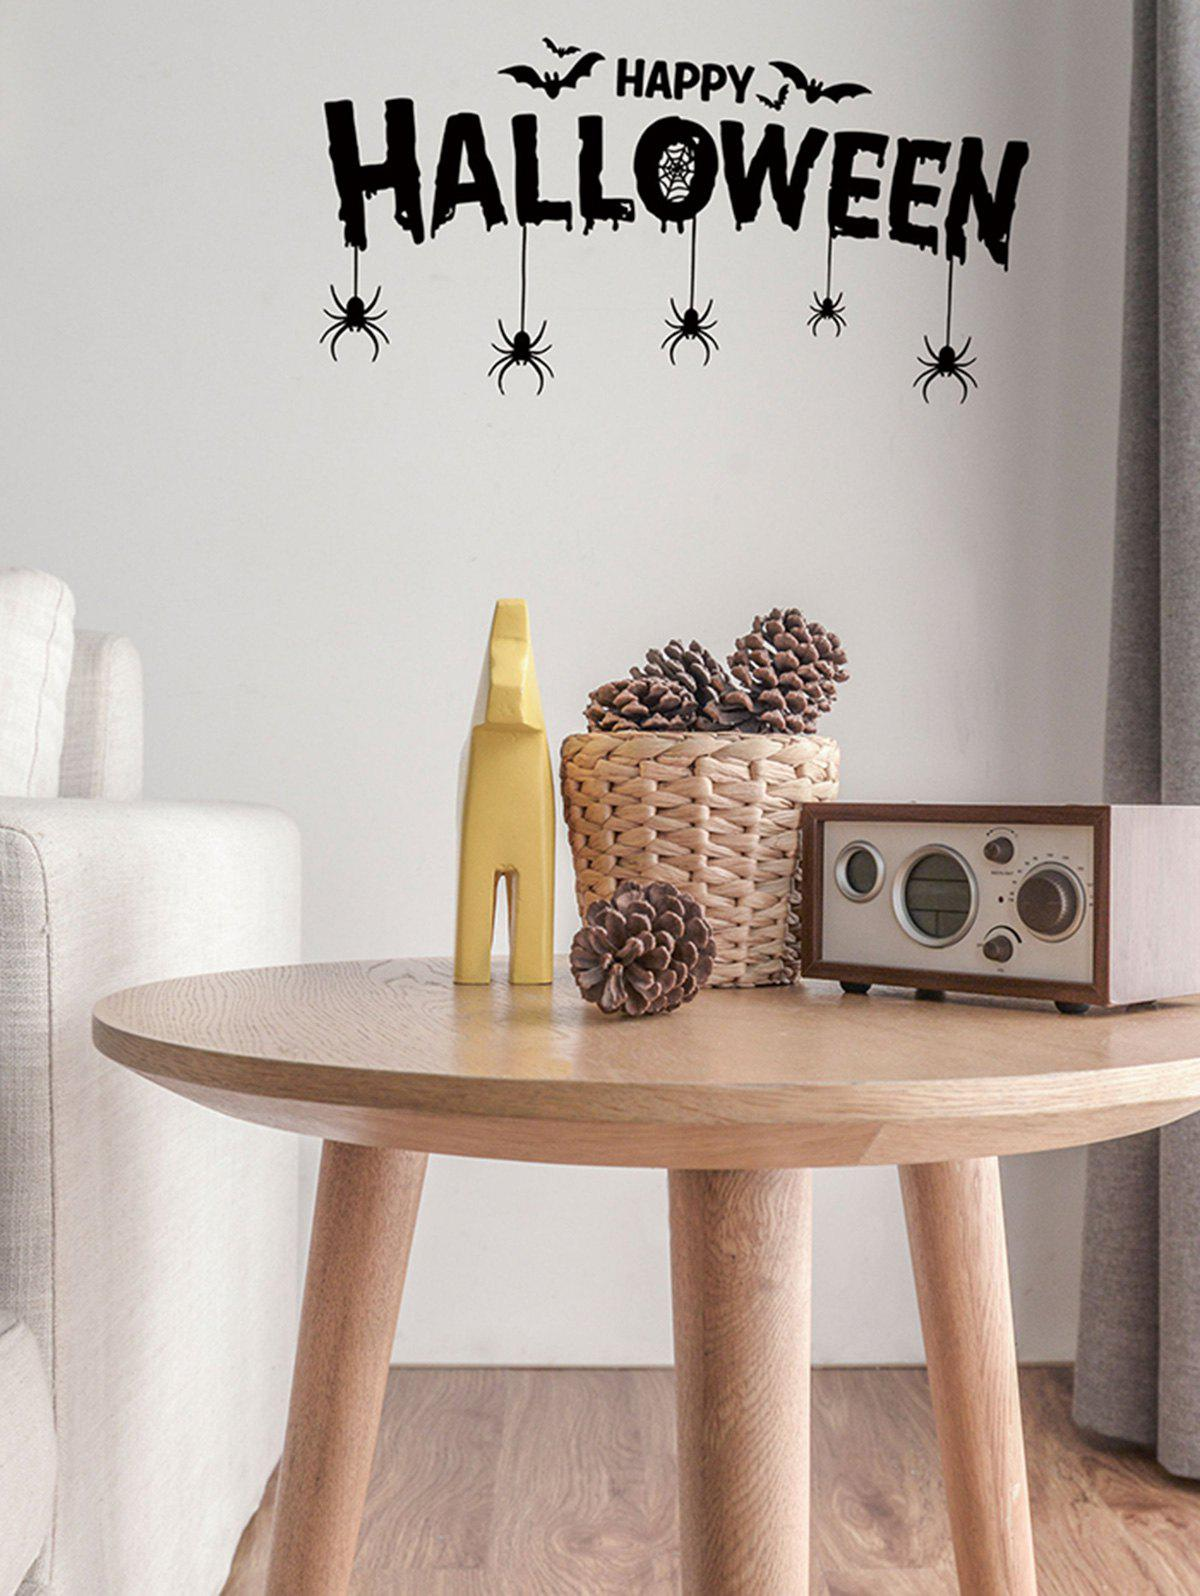 Cheap Halloween Bats and Spiders Print Decorative Wall Art Stickers